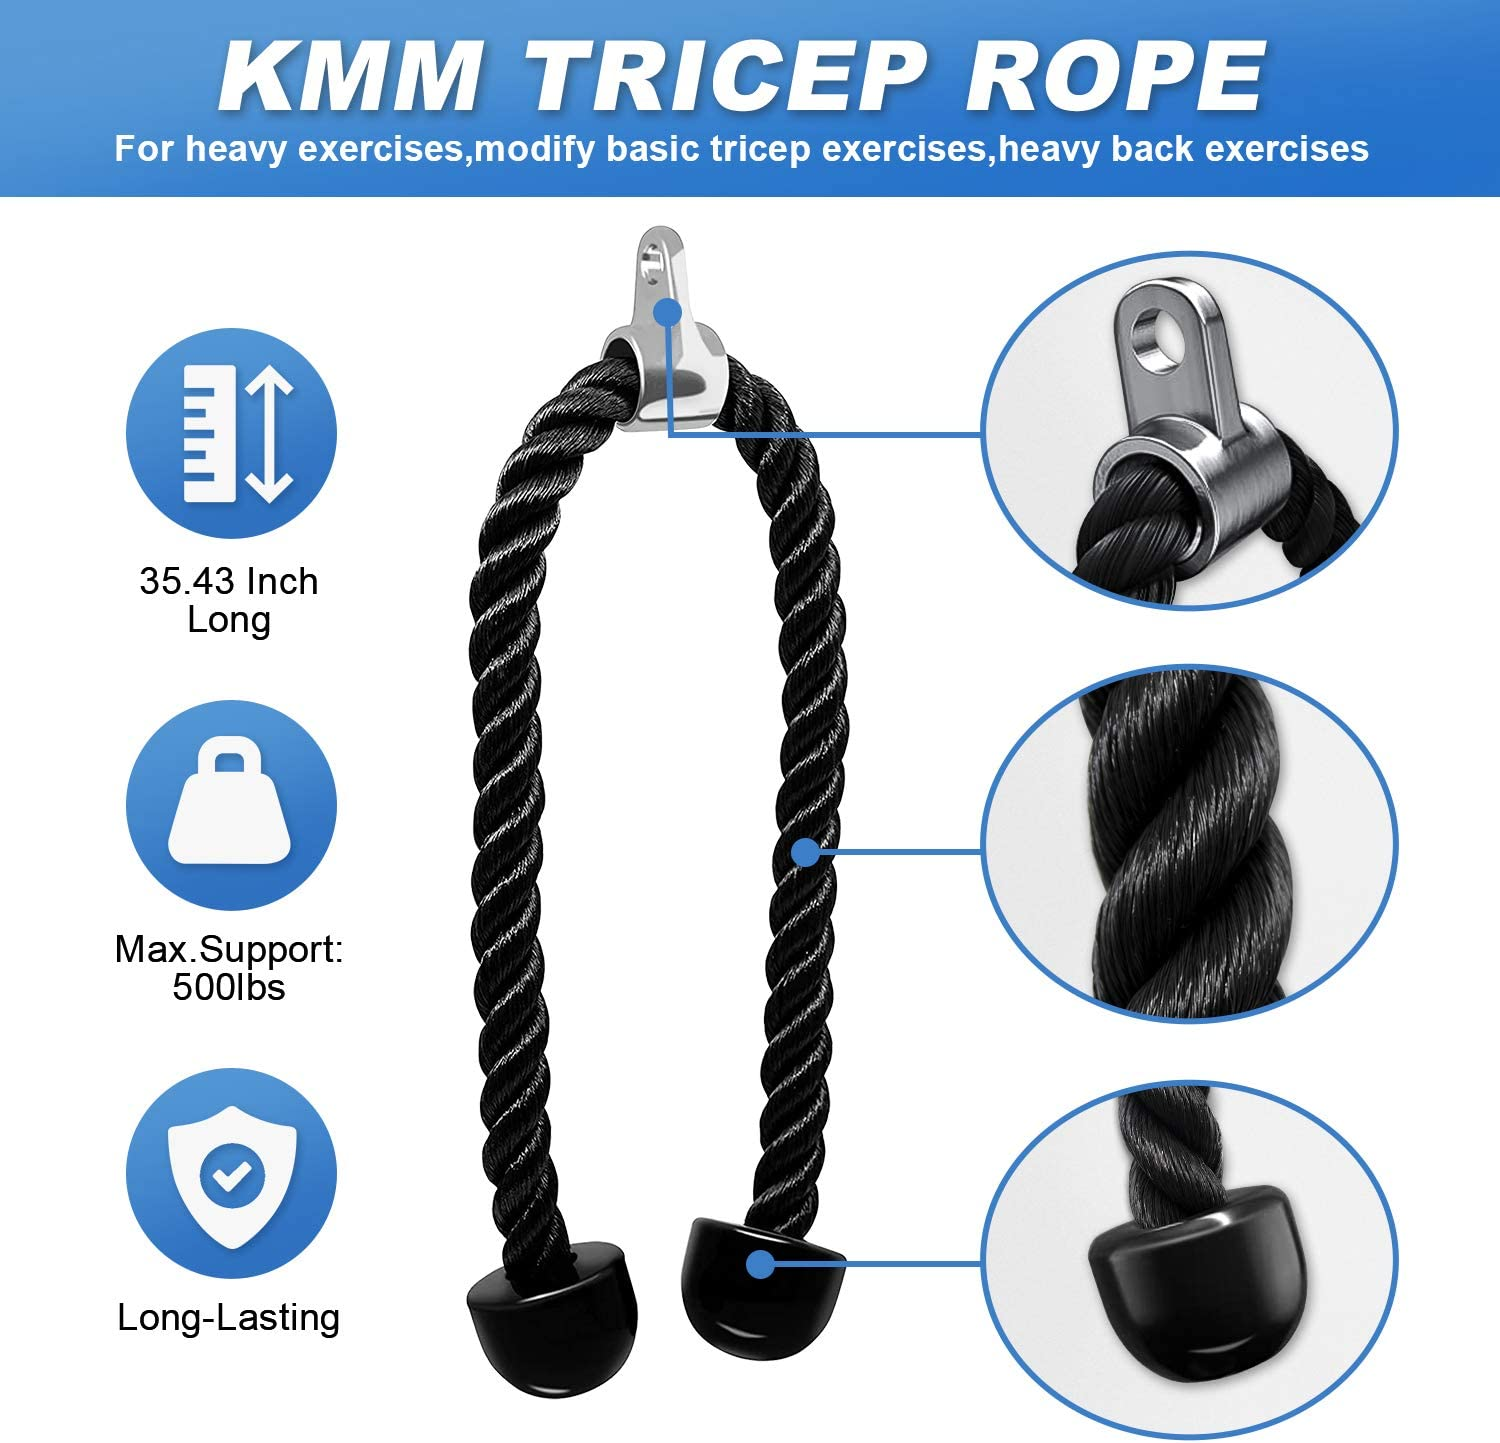 Details about  /1 Pair Tricep Rope Cable Attachment Handle Bar Resistance Gym Training Bands Kit